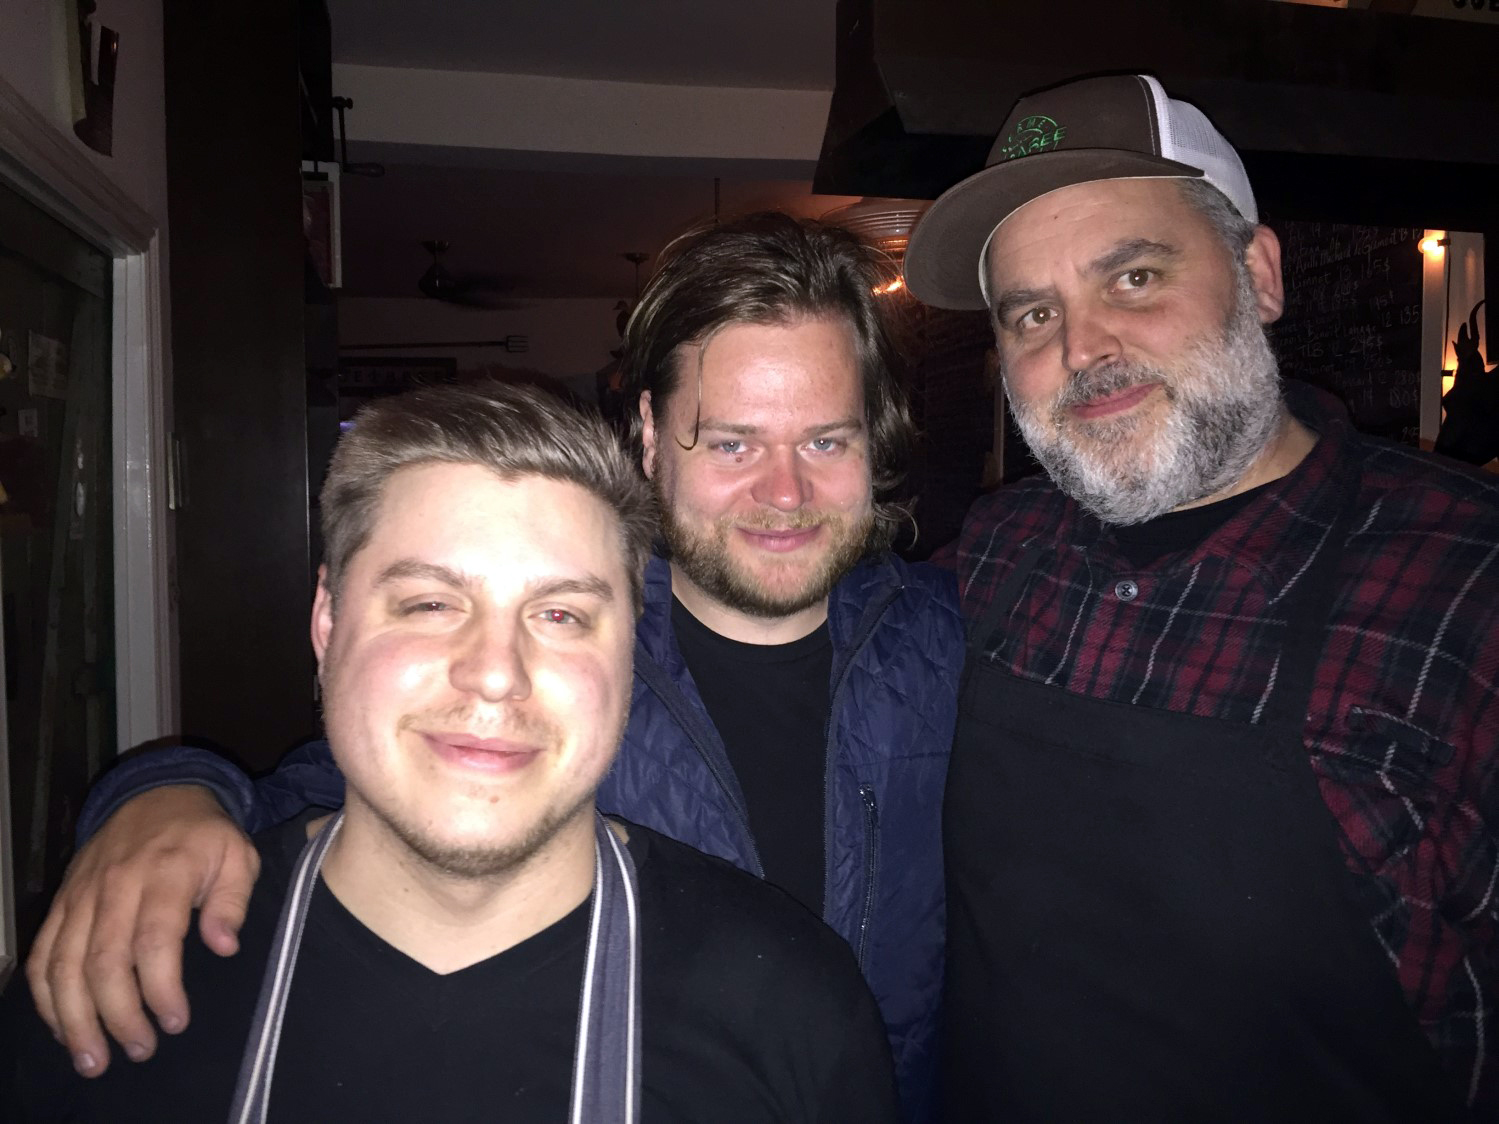 Magnus with local restaurant Joe Beef's chef Marc-Olivier Frappier and owner David McMillan